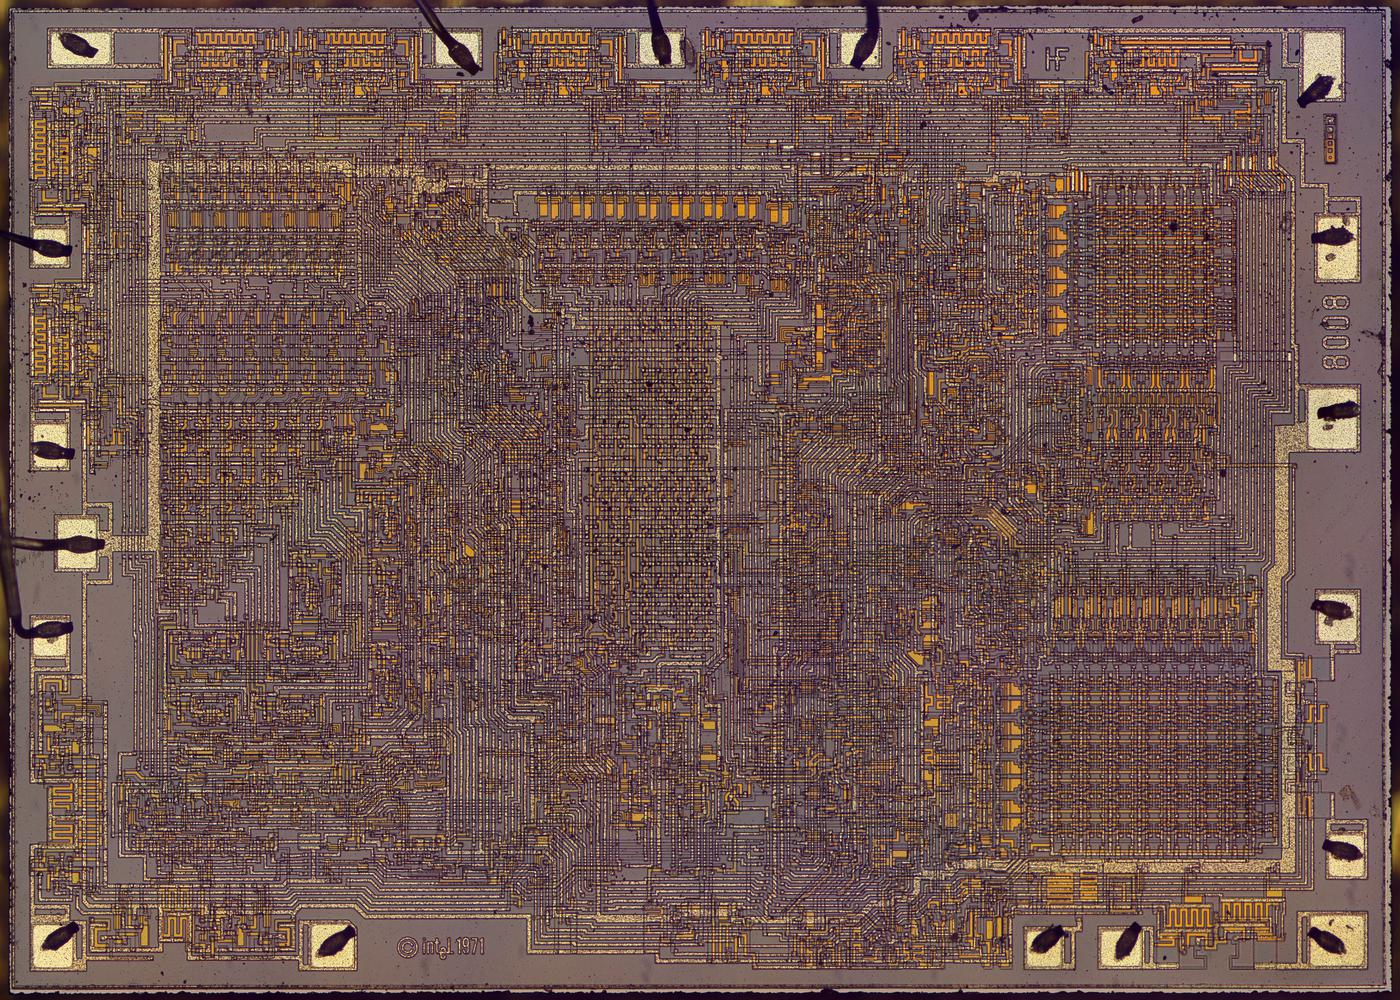 Die photo of the Intel 8008 processor. Click for a larger version.